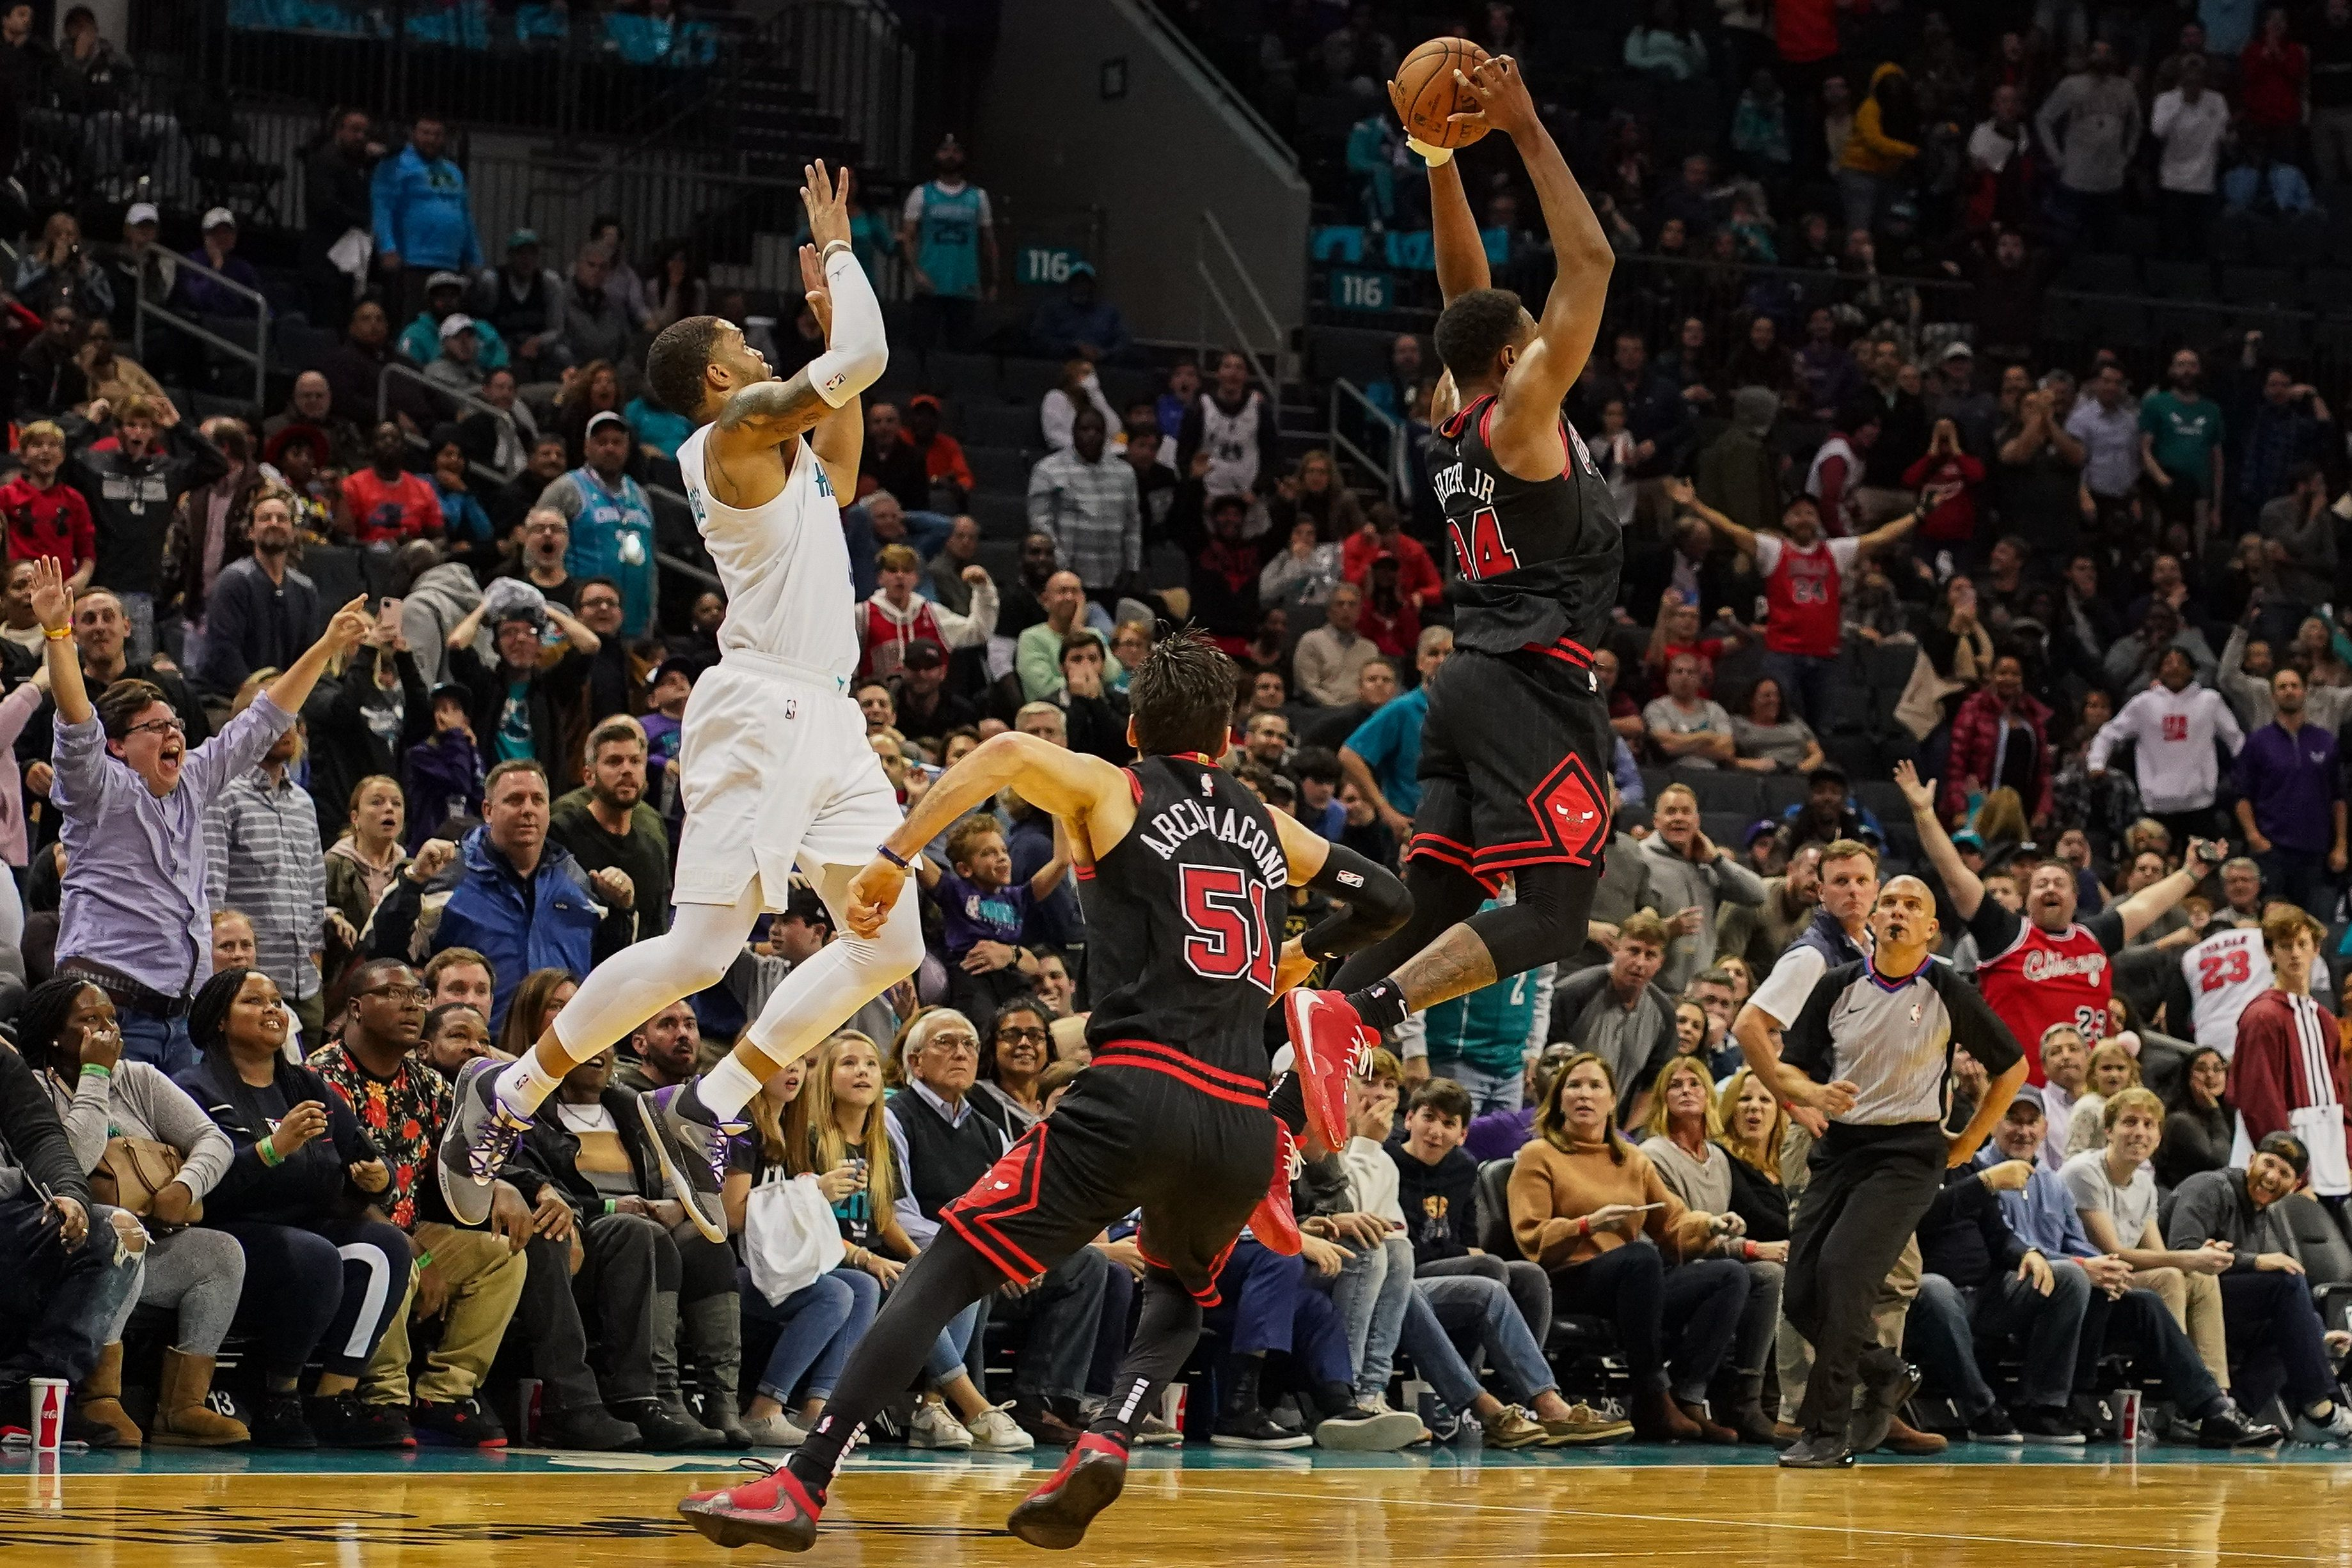 Charlotte Hornets Fall to Chicago Bulls in Heartbreaker at Home